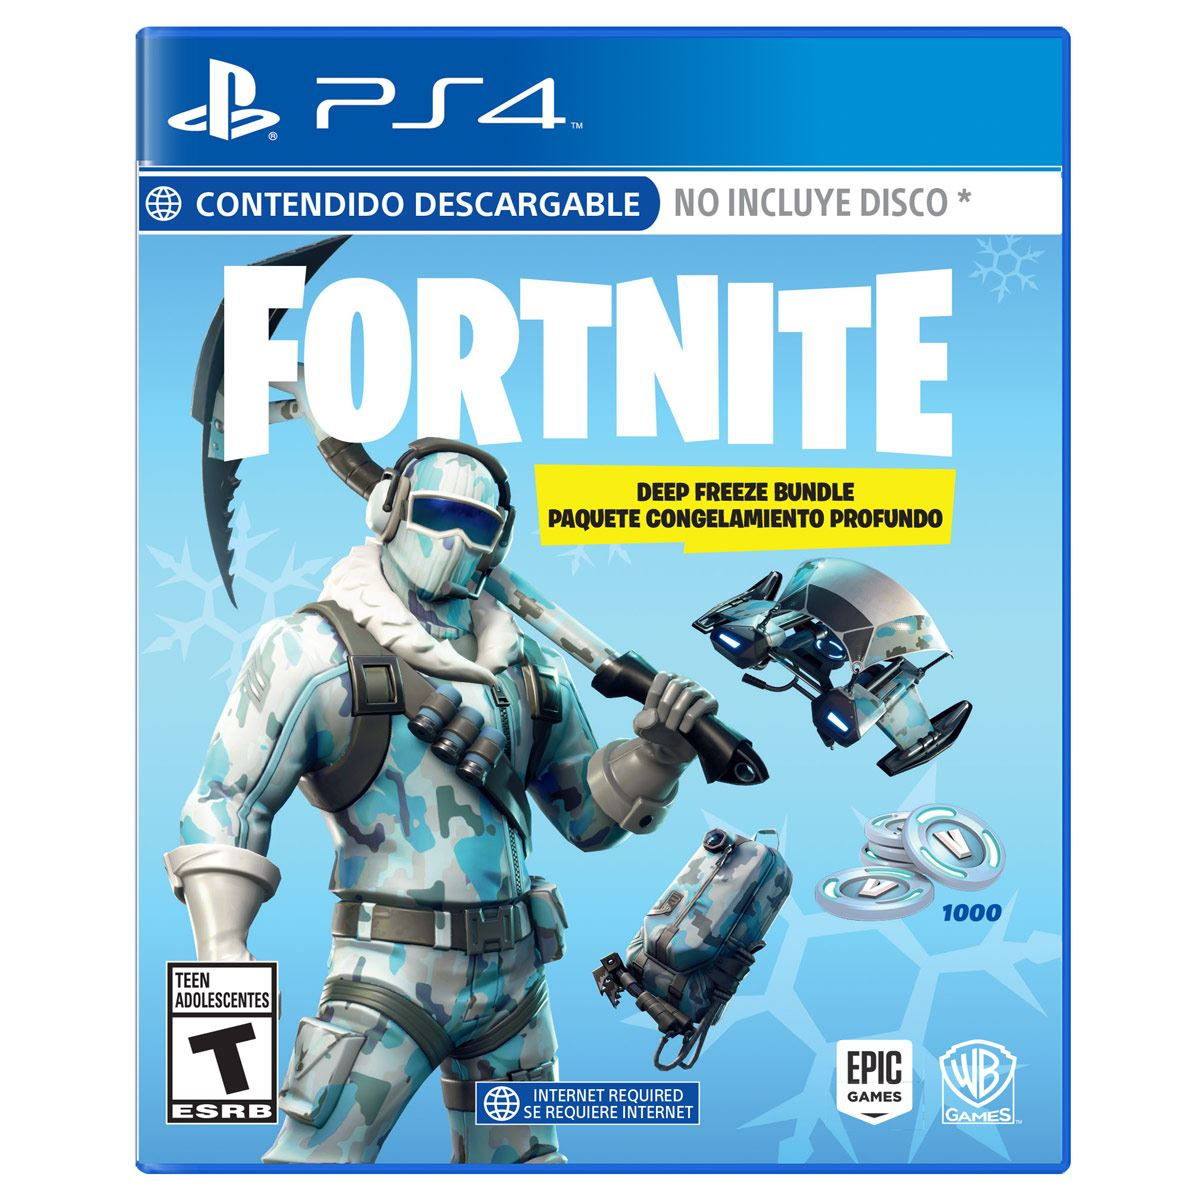 Ps4 fortnite deep freeze bundle  - Sanborns